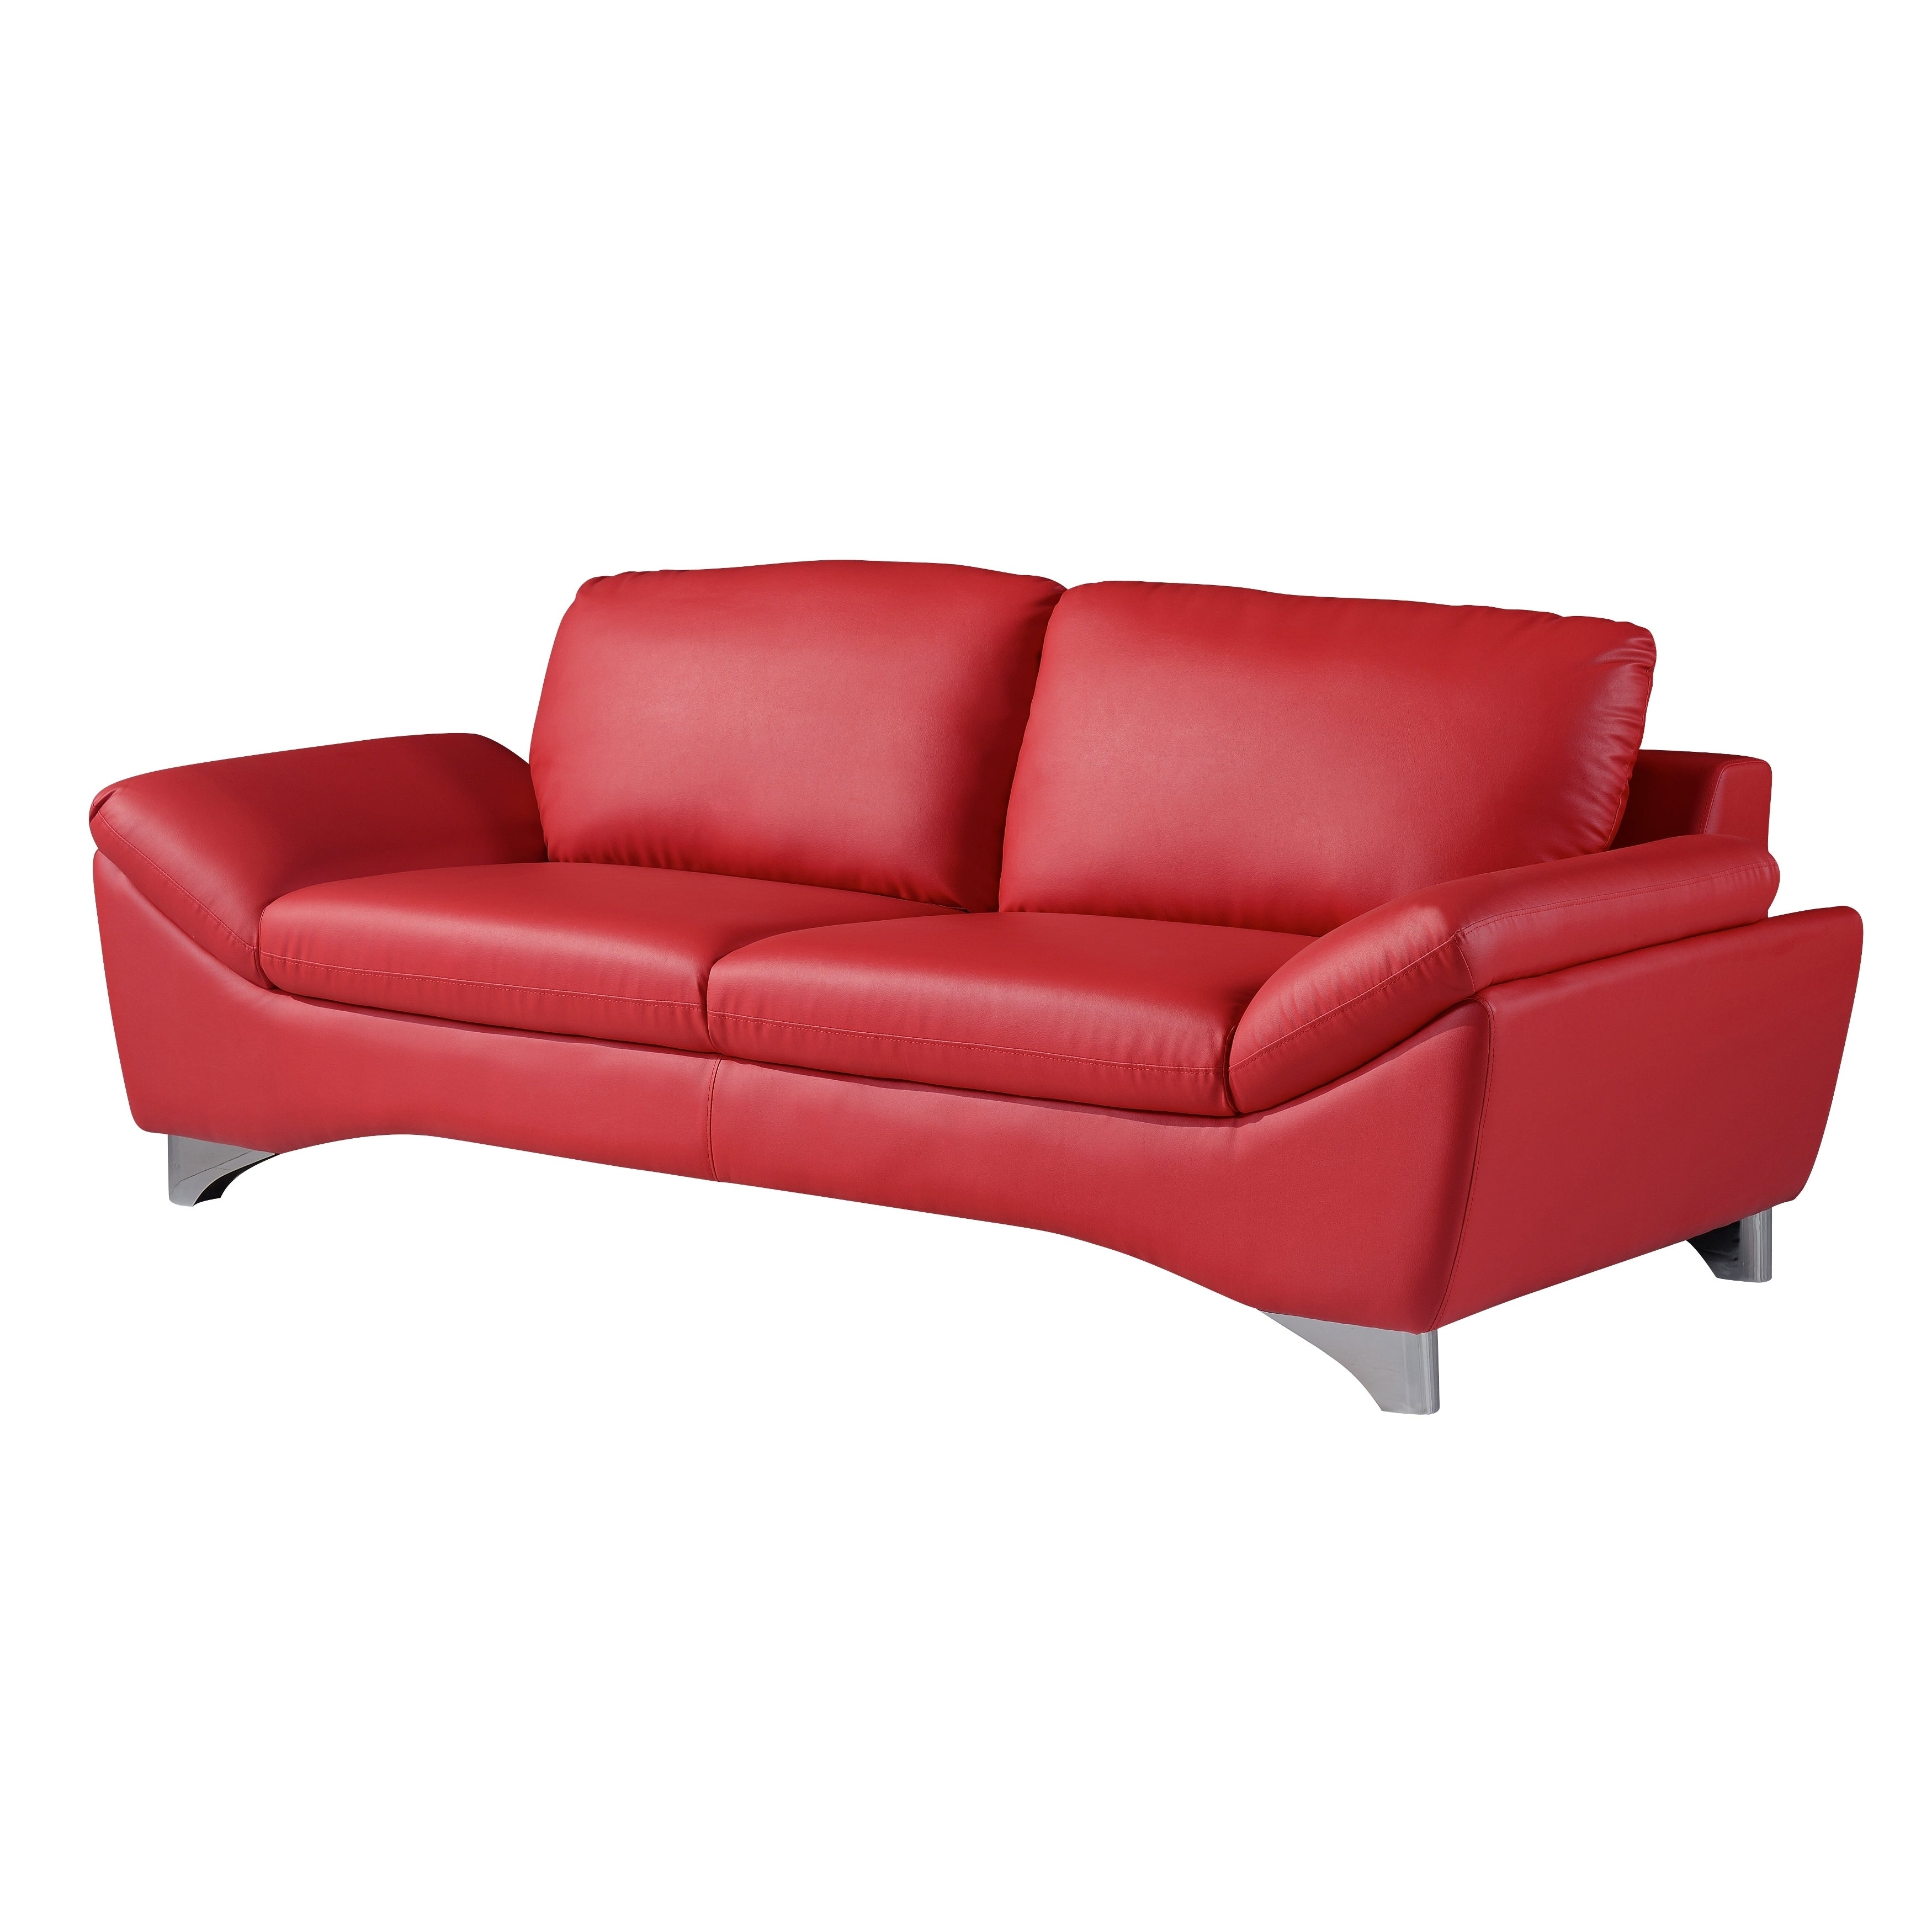 Overstock leather sofa